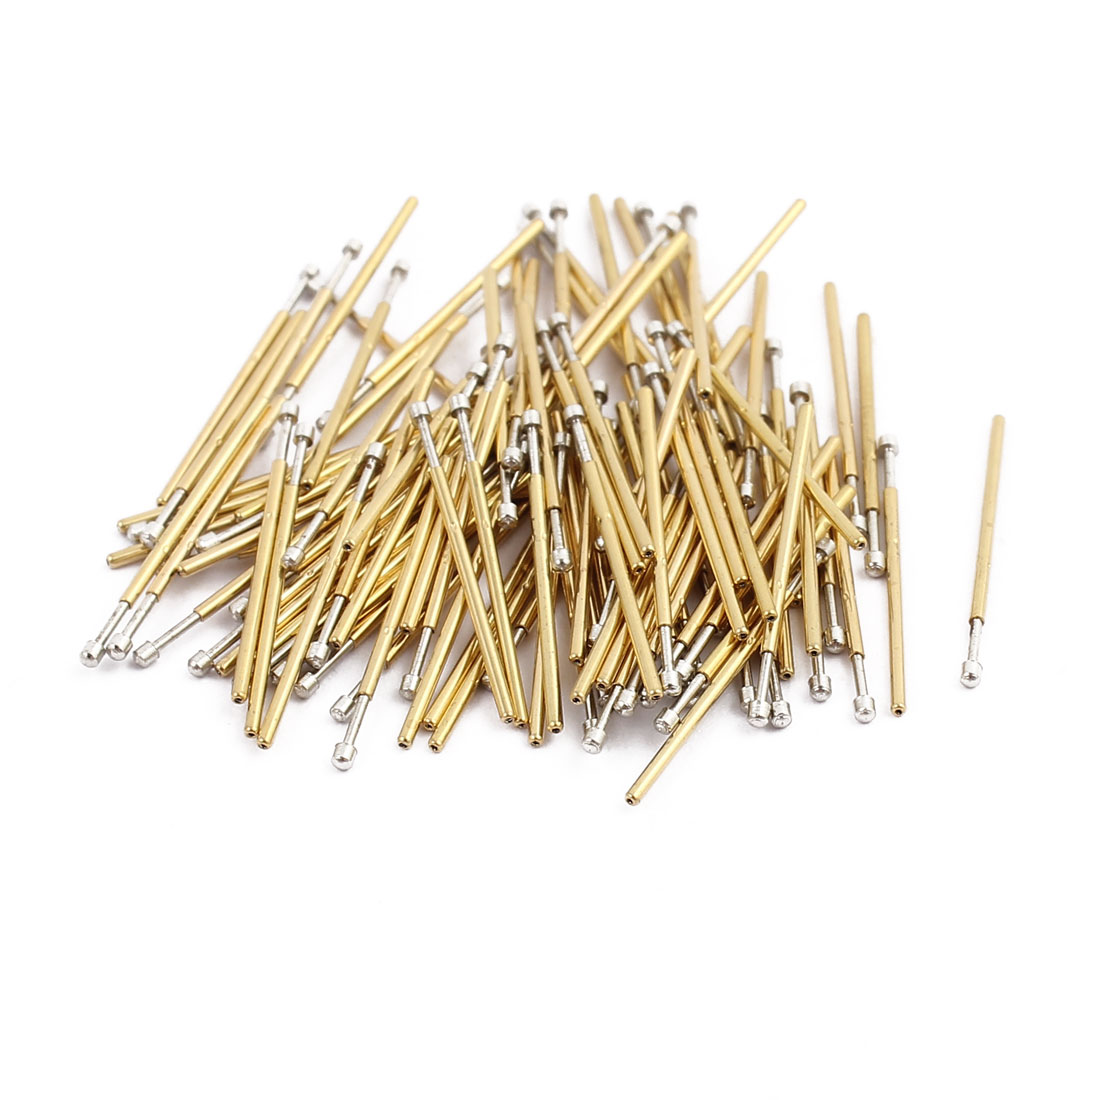 100pcs P50-D2 0.68mm Dia 16.5mm Length Metal Spring Pressure Test Probe Needle